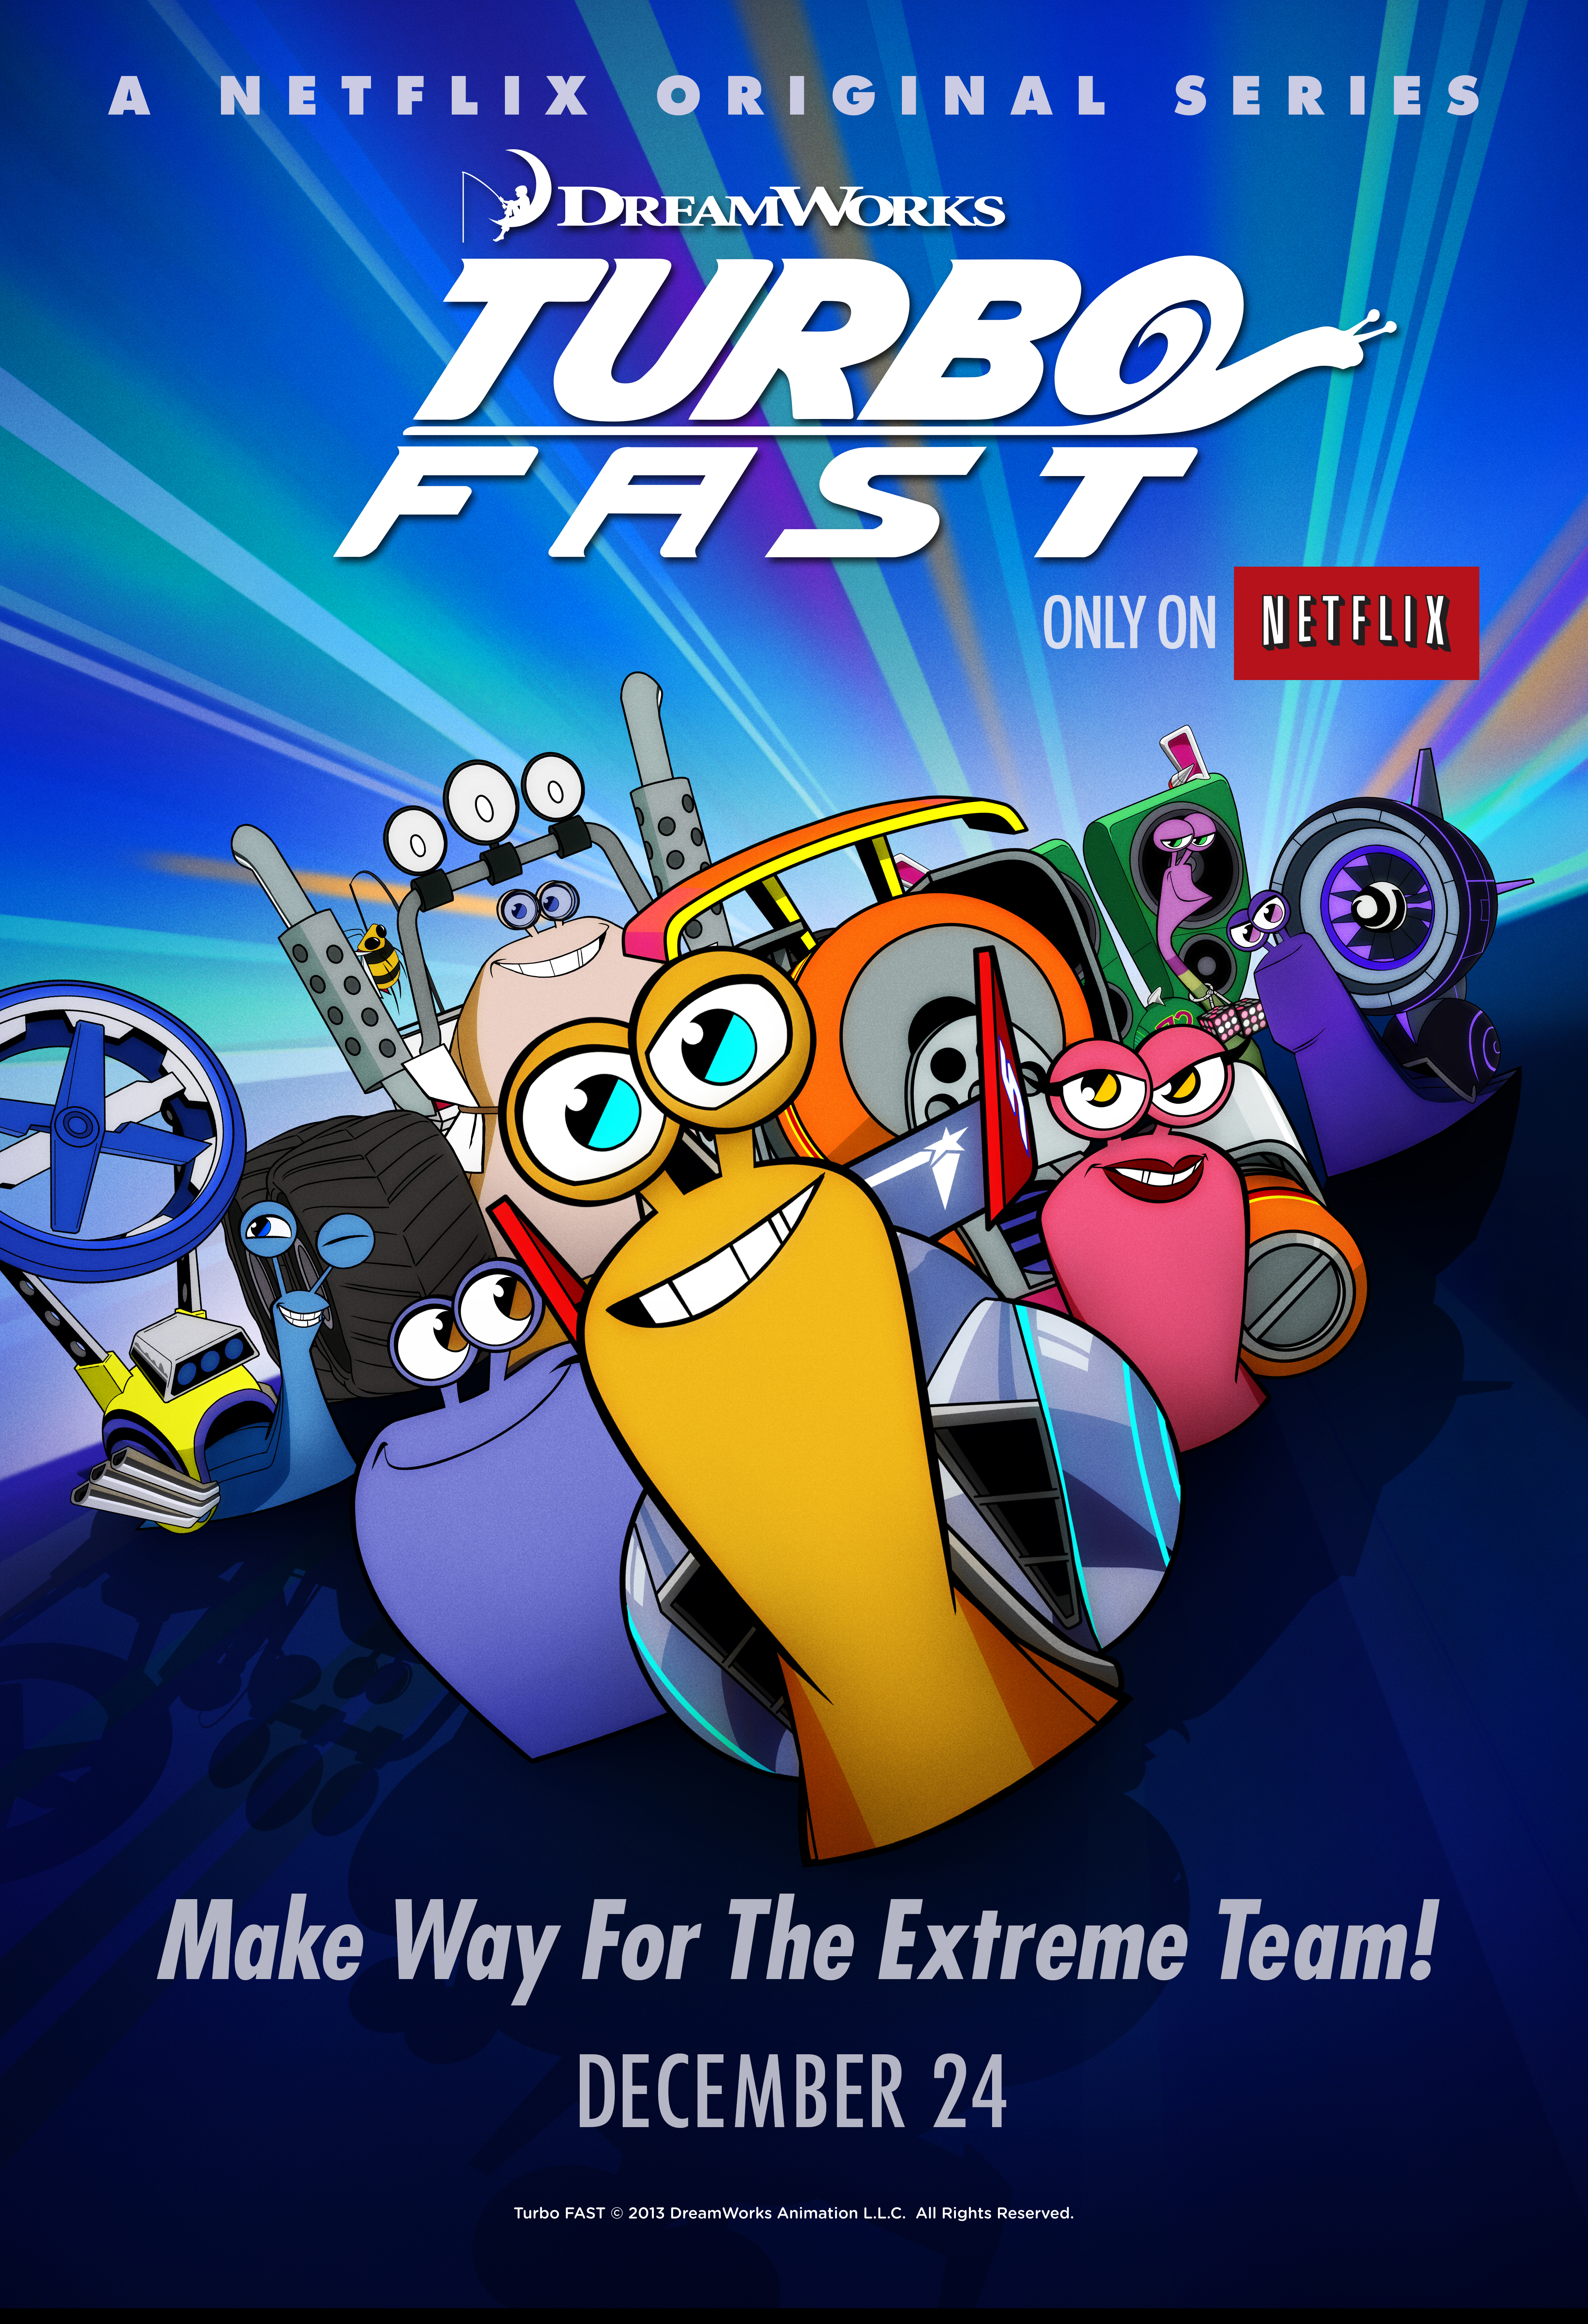 New Episodes of Turbo Fast Coming to Netflix